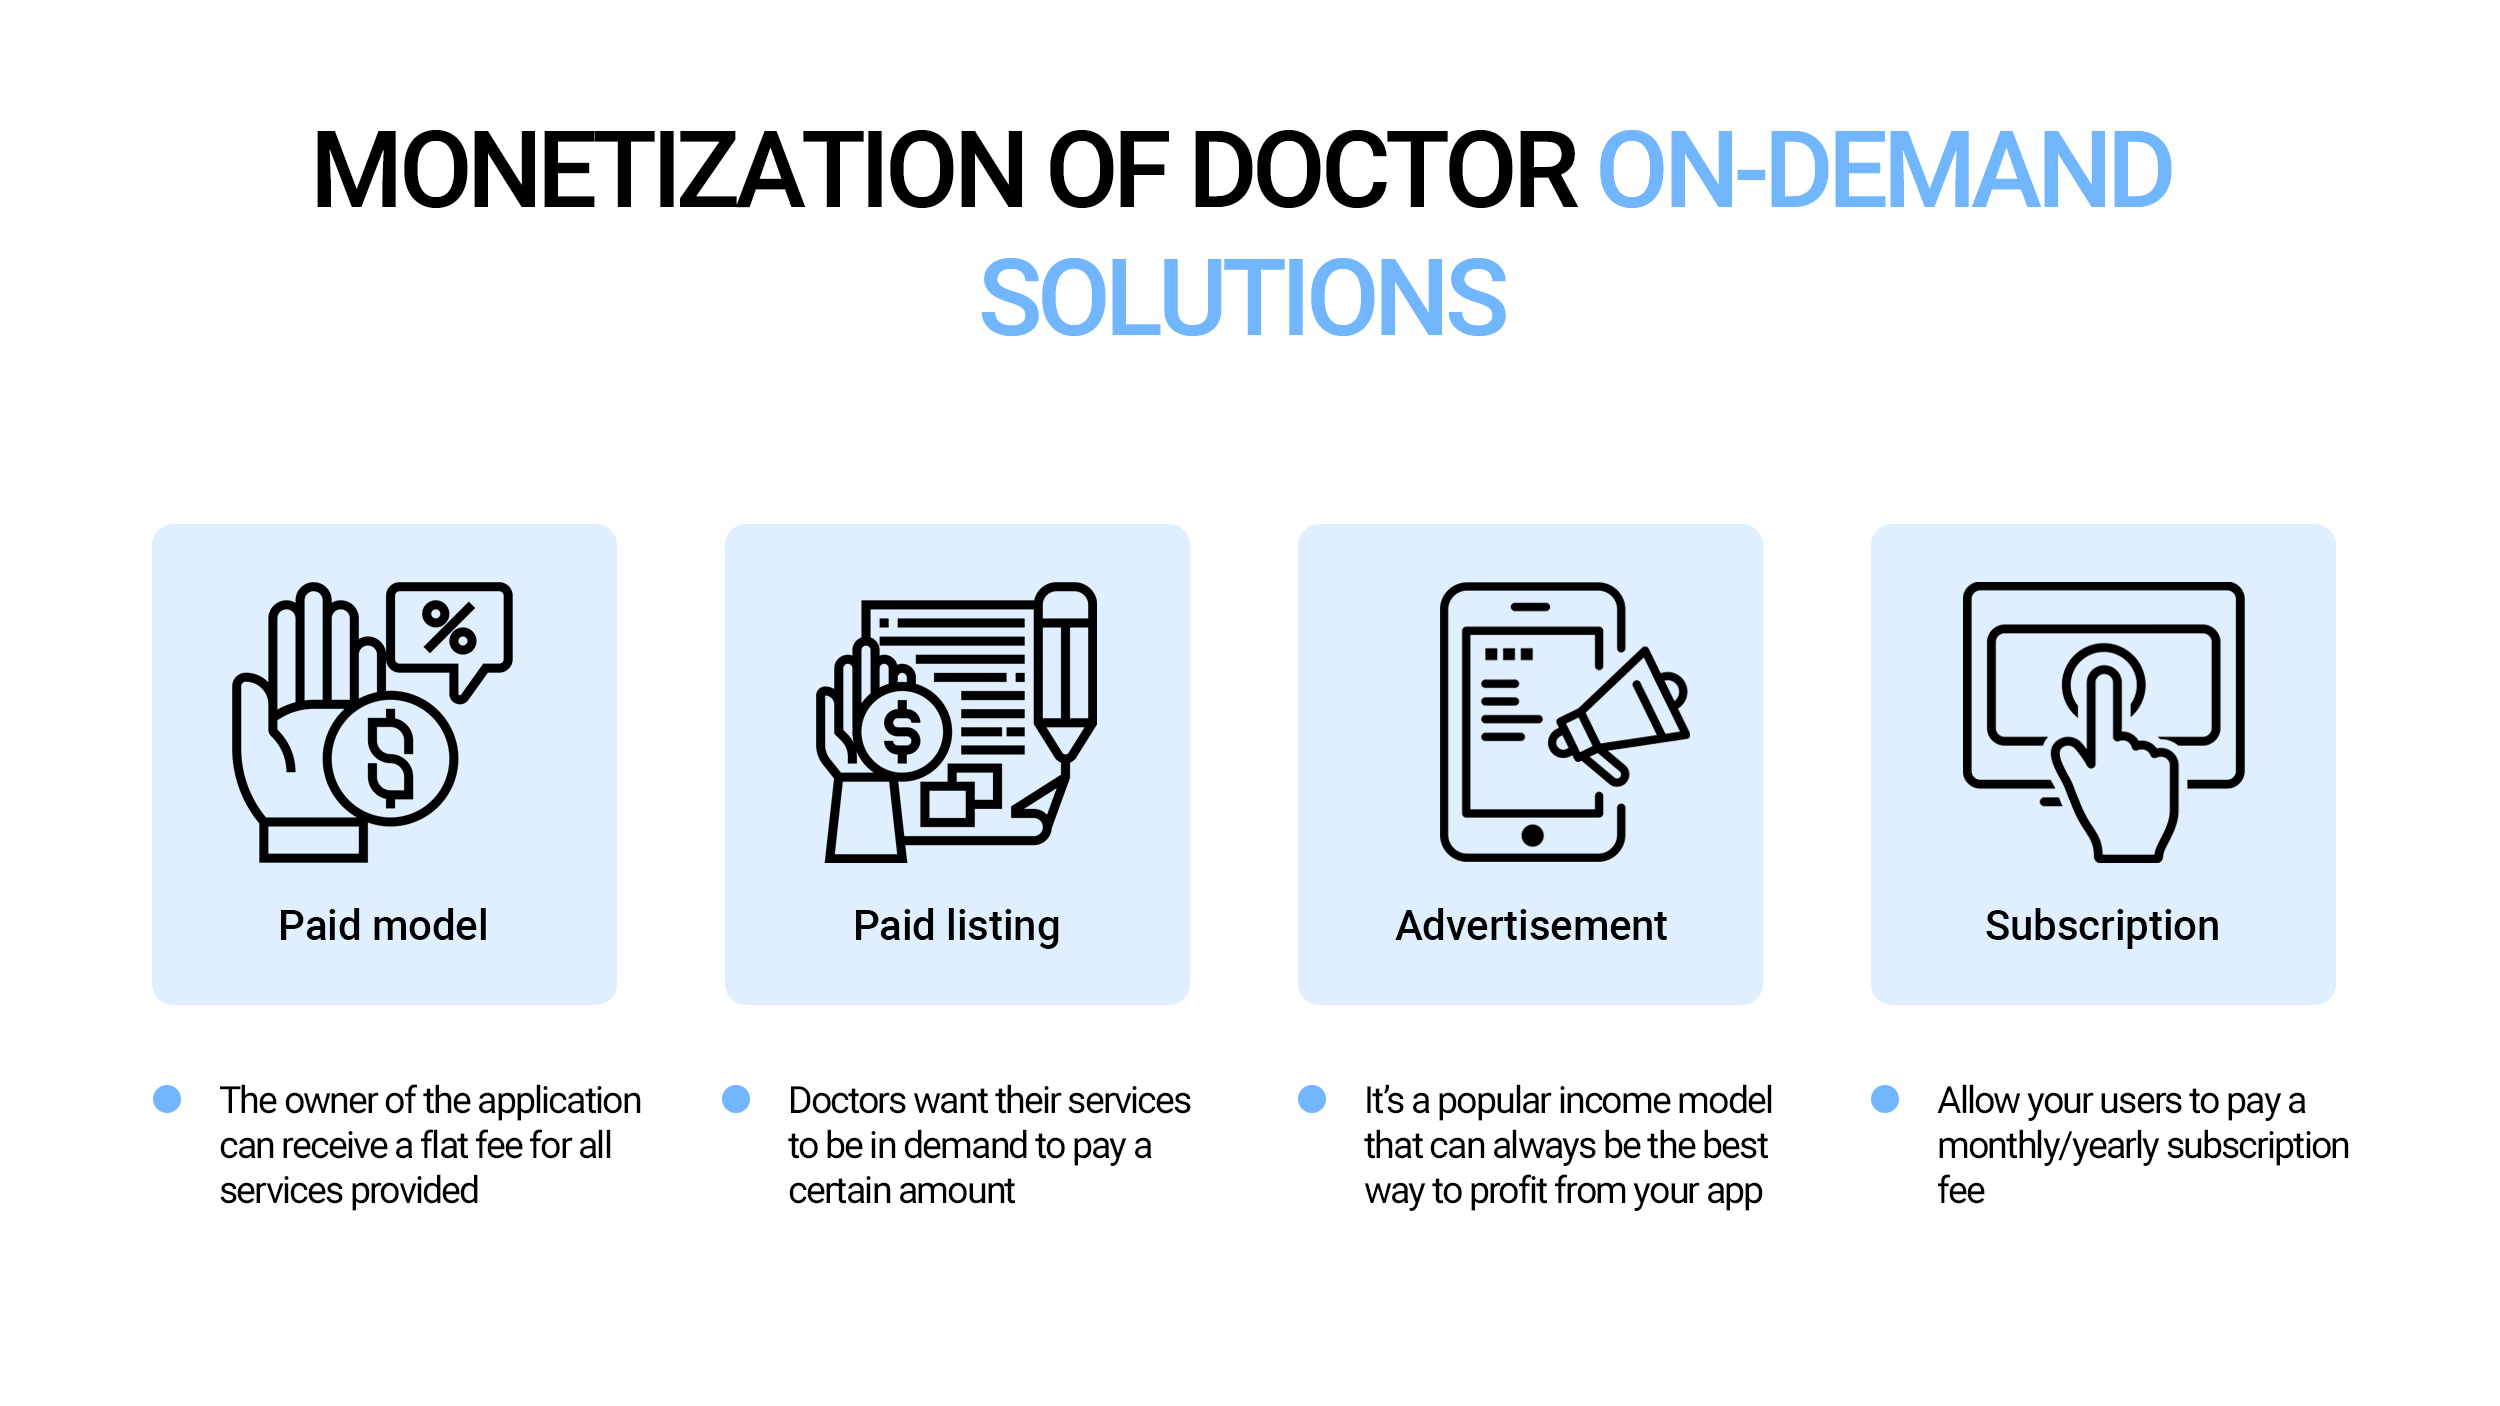 Monetization of Doctor On-Demand Solutions